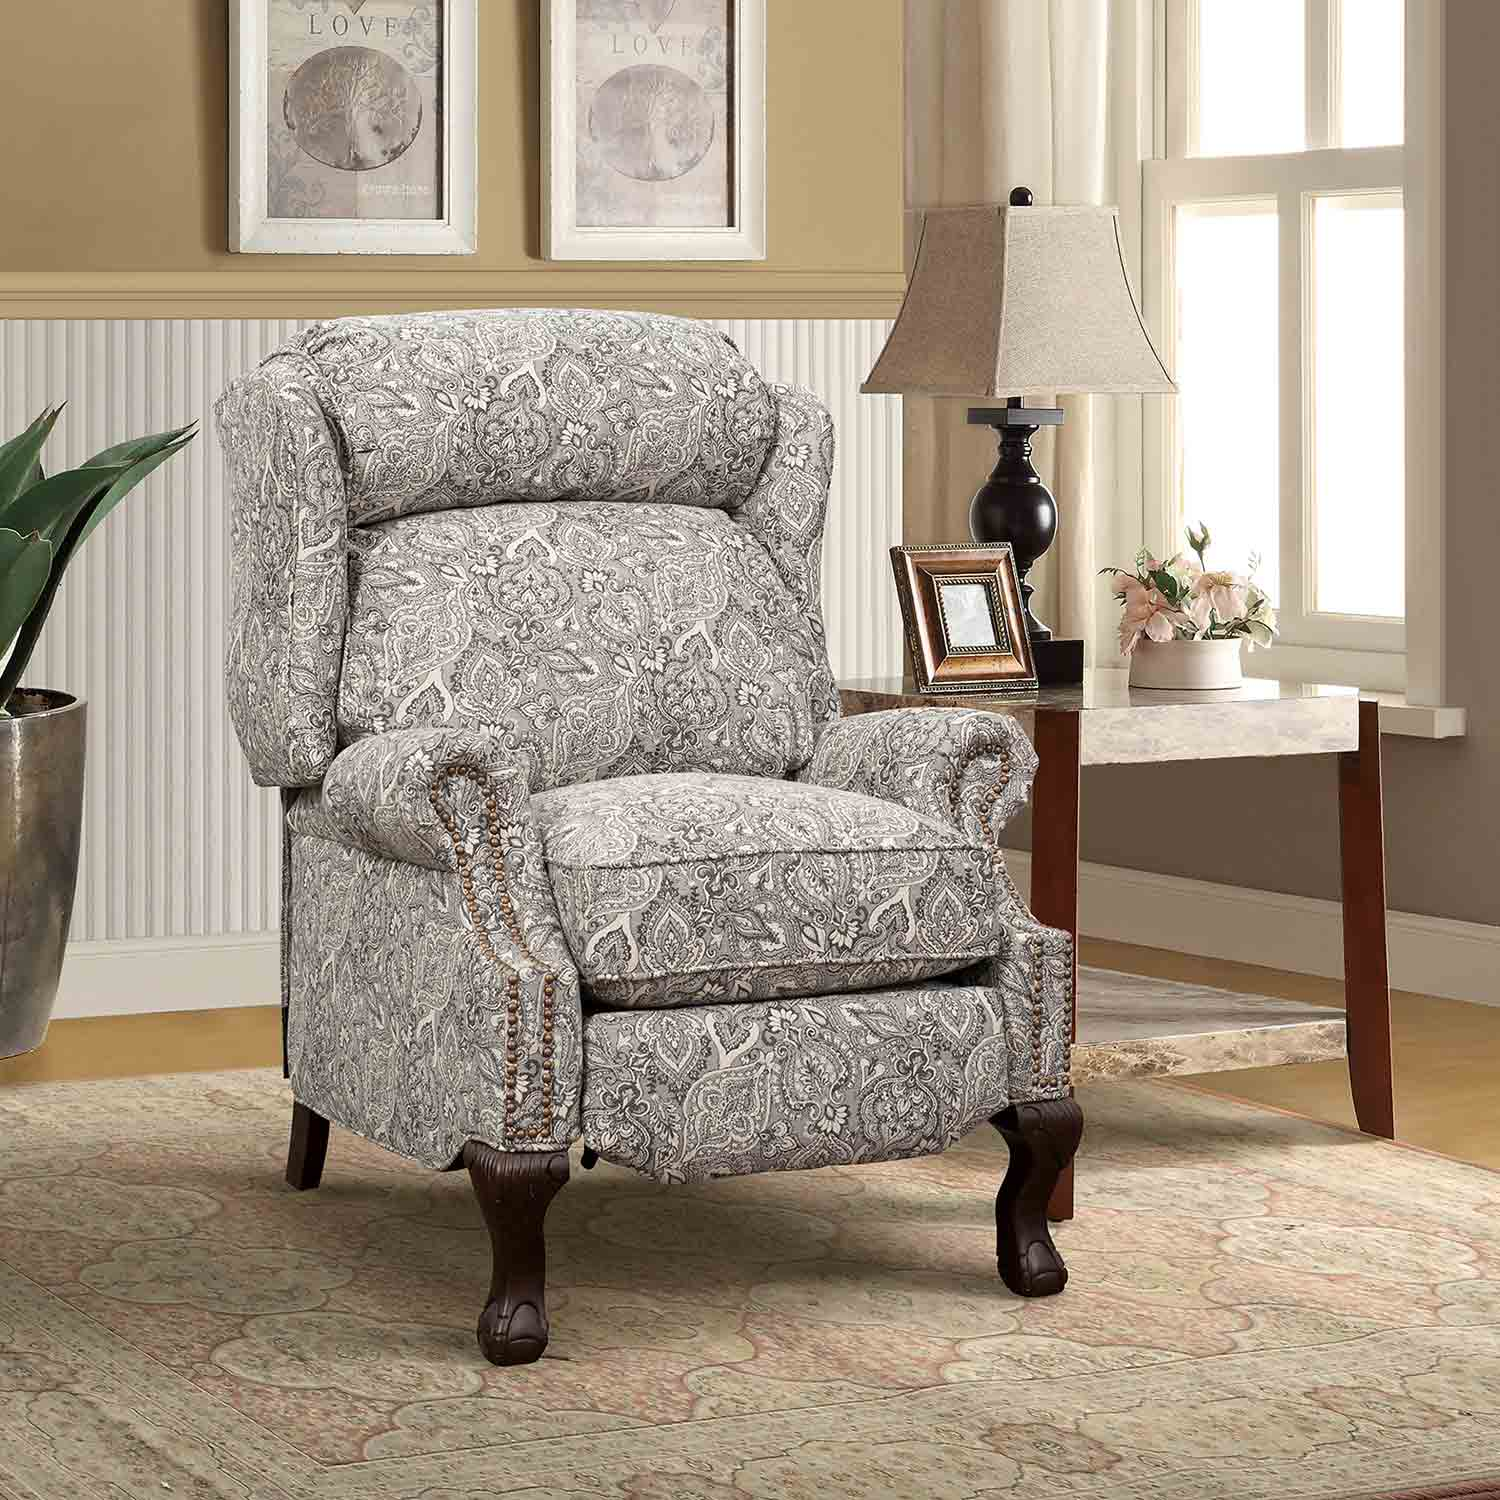 Barcalounger Danbury Recliner Chair - Rustic Cobblestone fabric